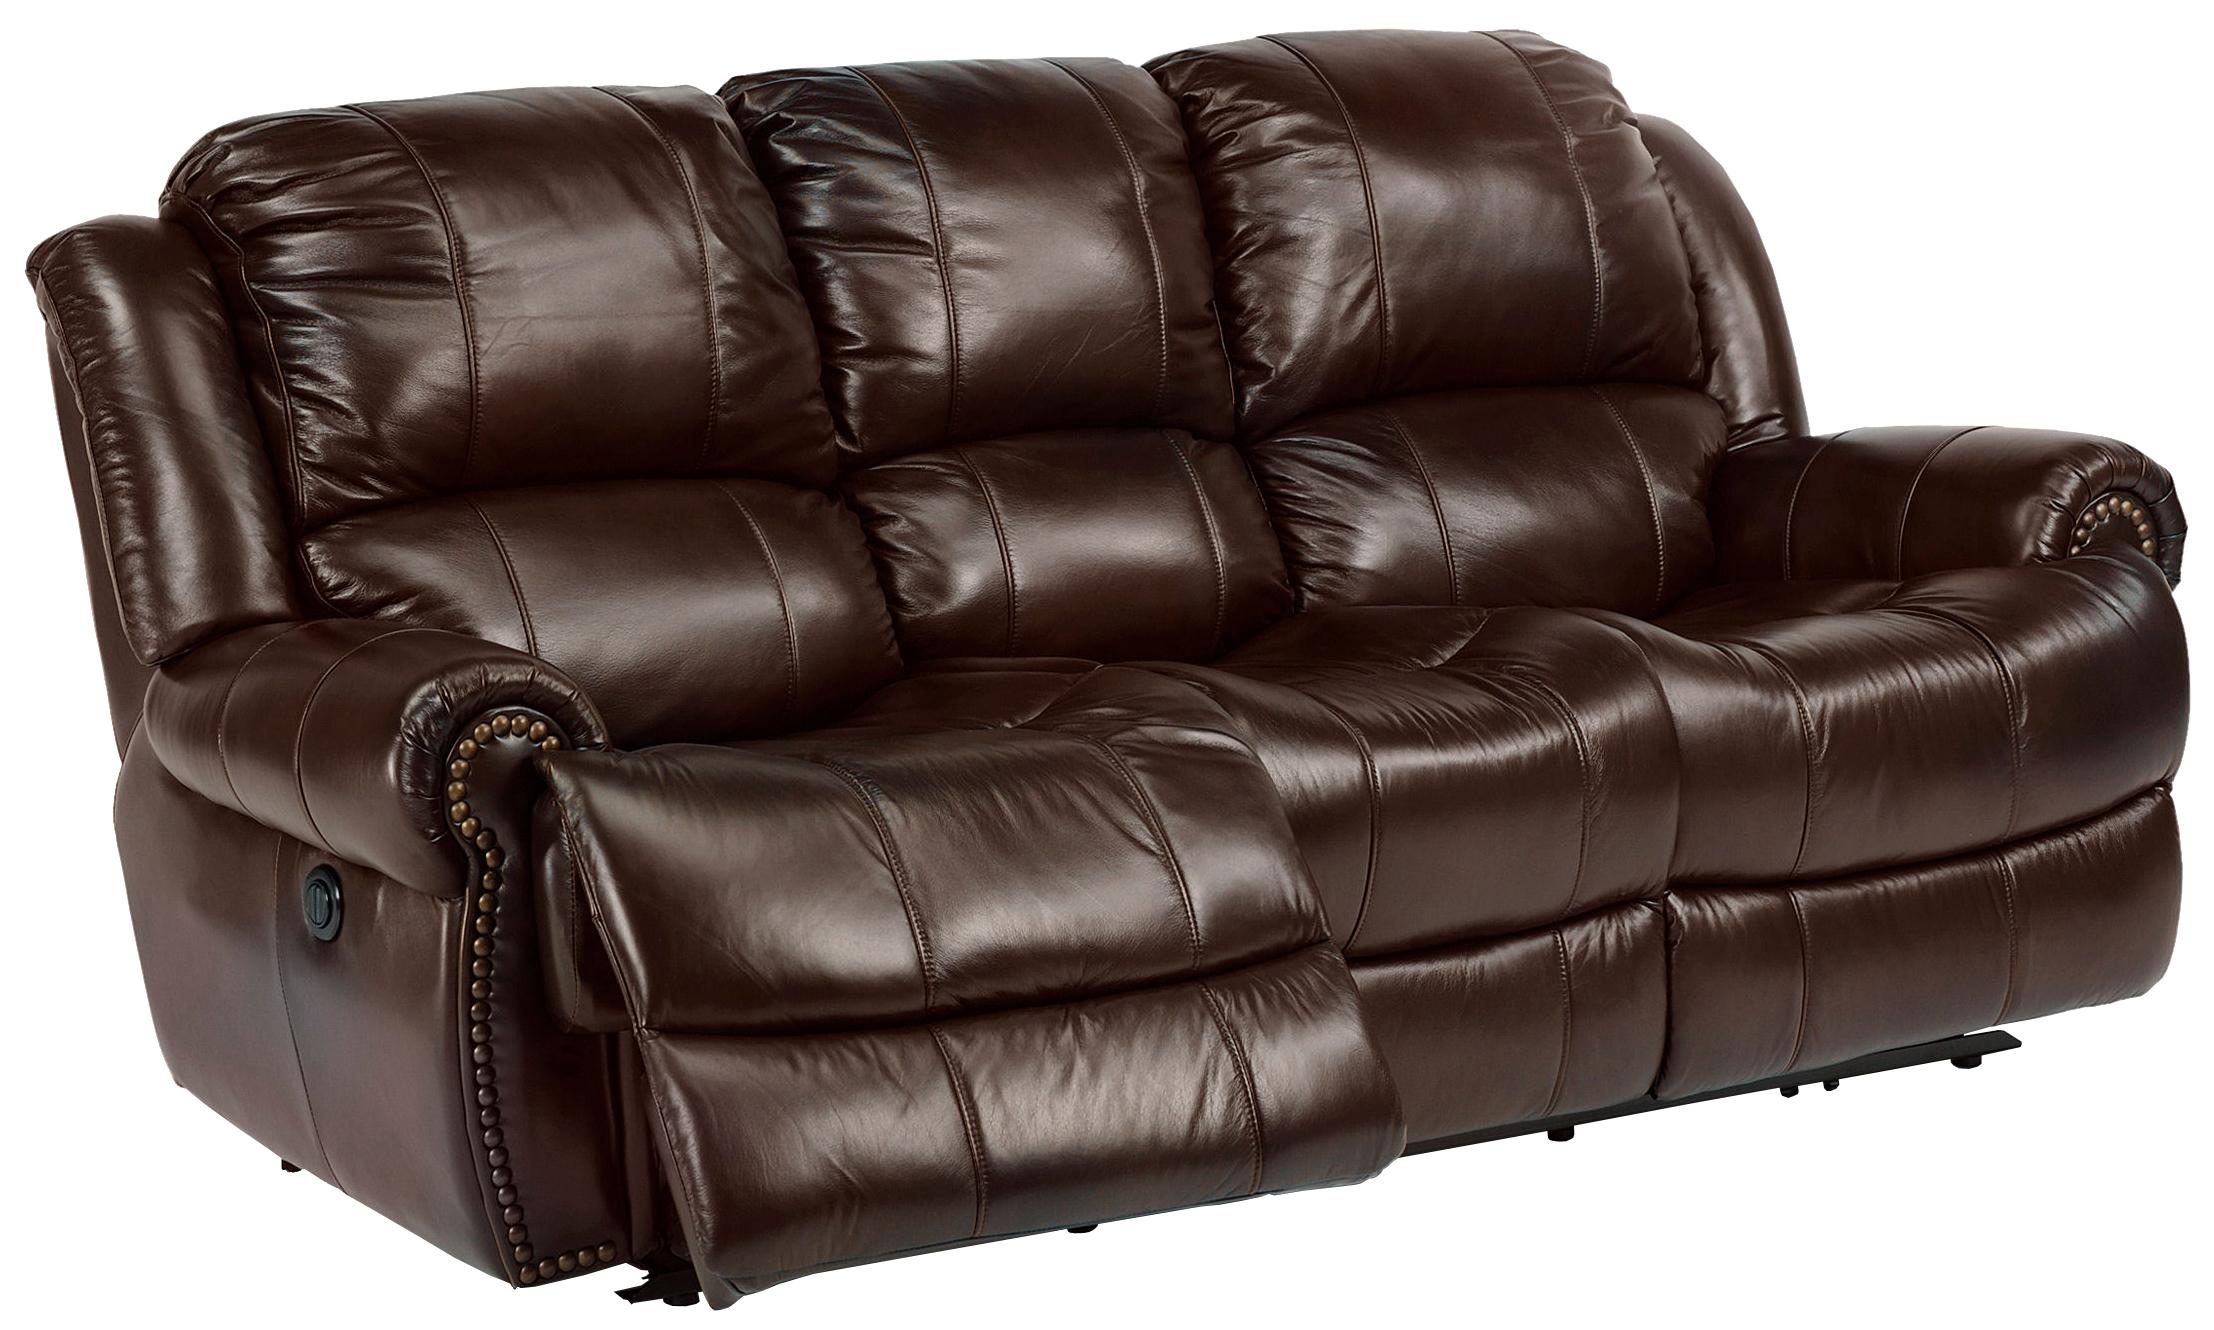 flexsteel latitudes capitol power reclining sofa with traditional furniture style wayside. Black Bedroom Furniture Sets. Home Design Ideas